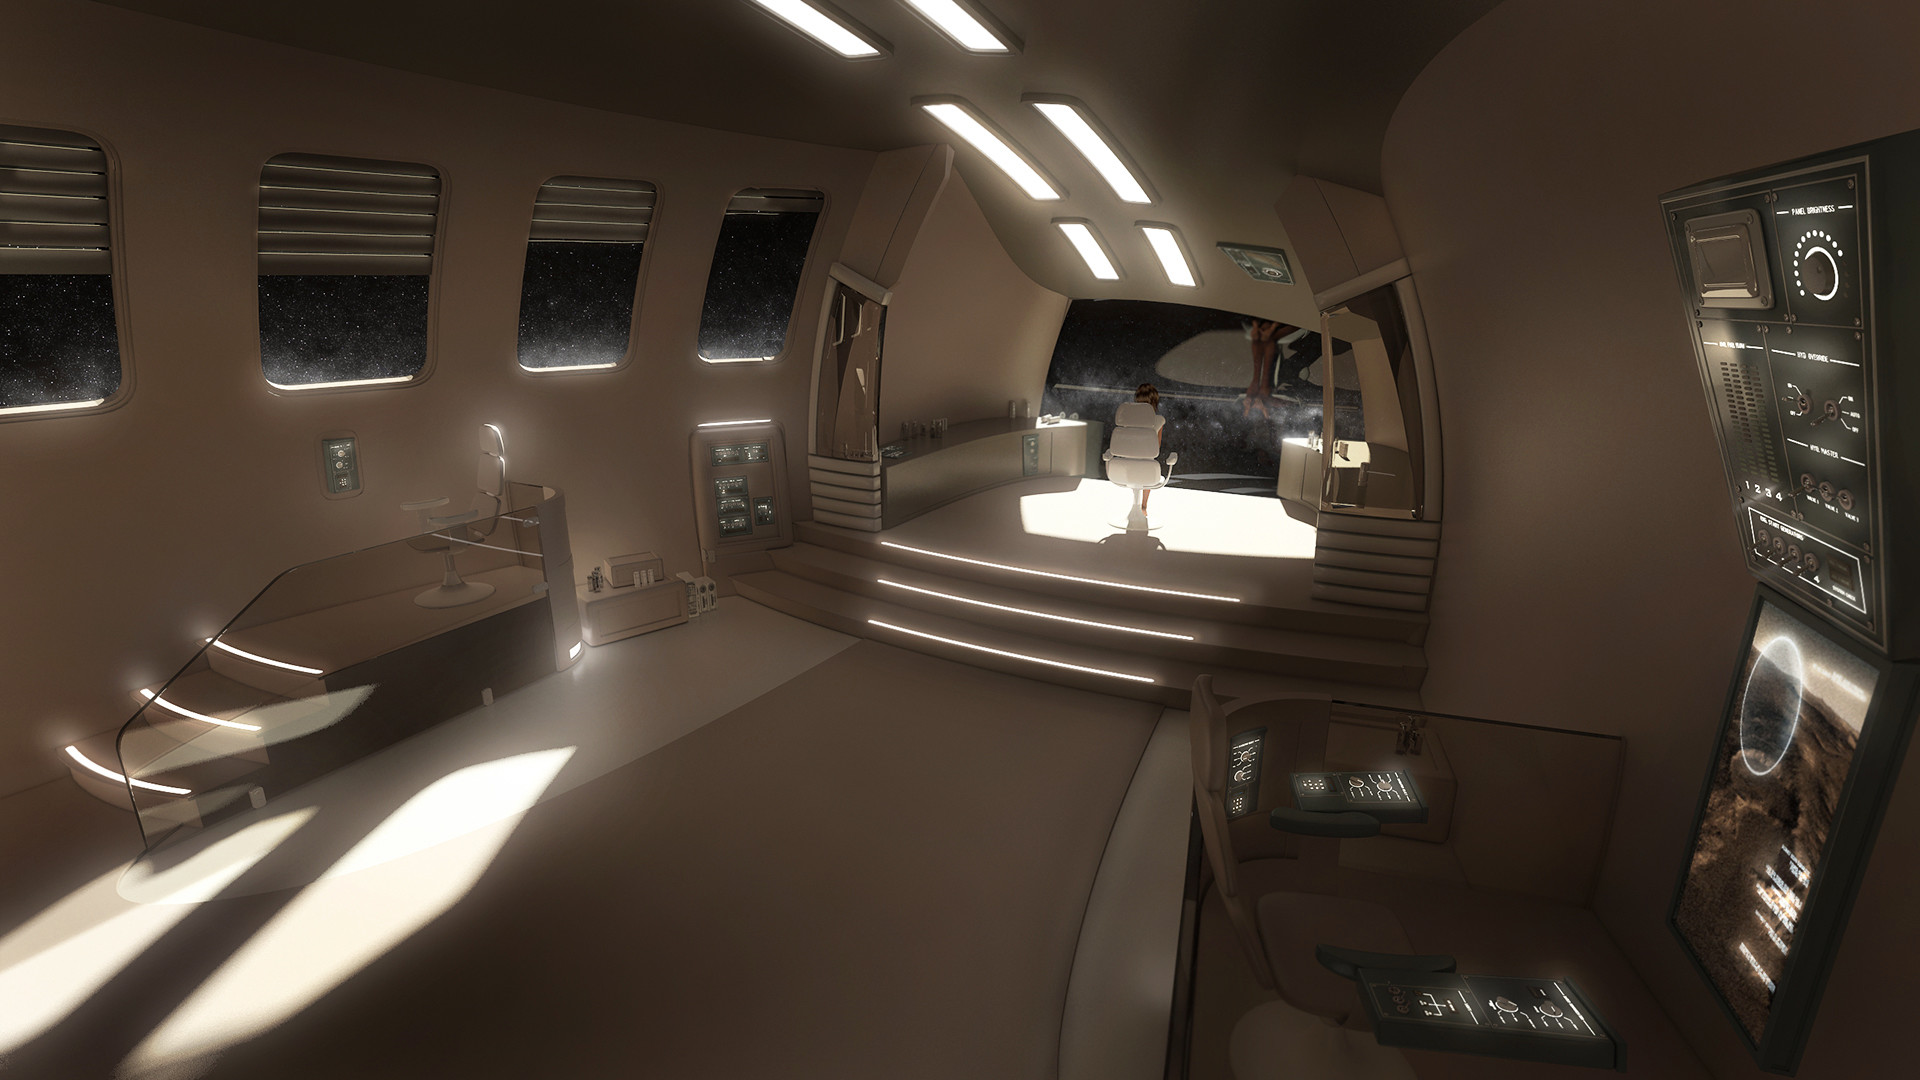 Res: 1920x1080, Spaceship interior wallpaper 23808 Interior hd pic